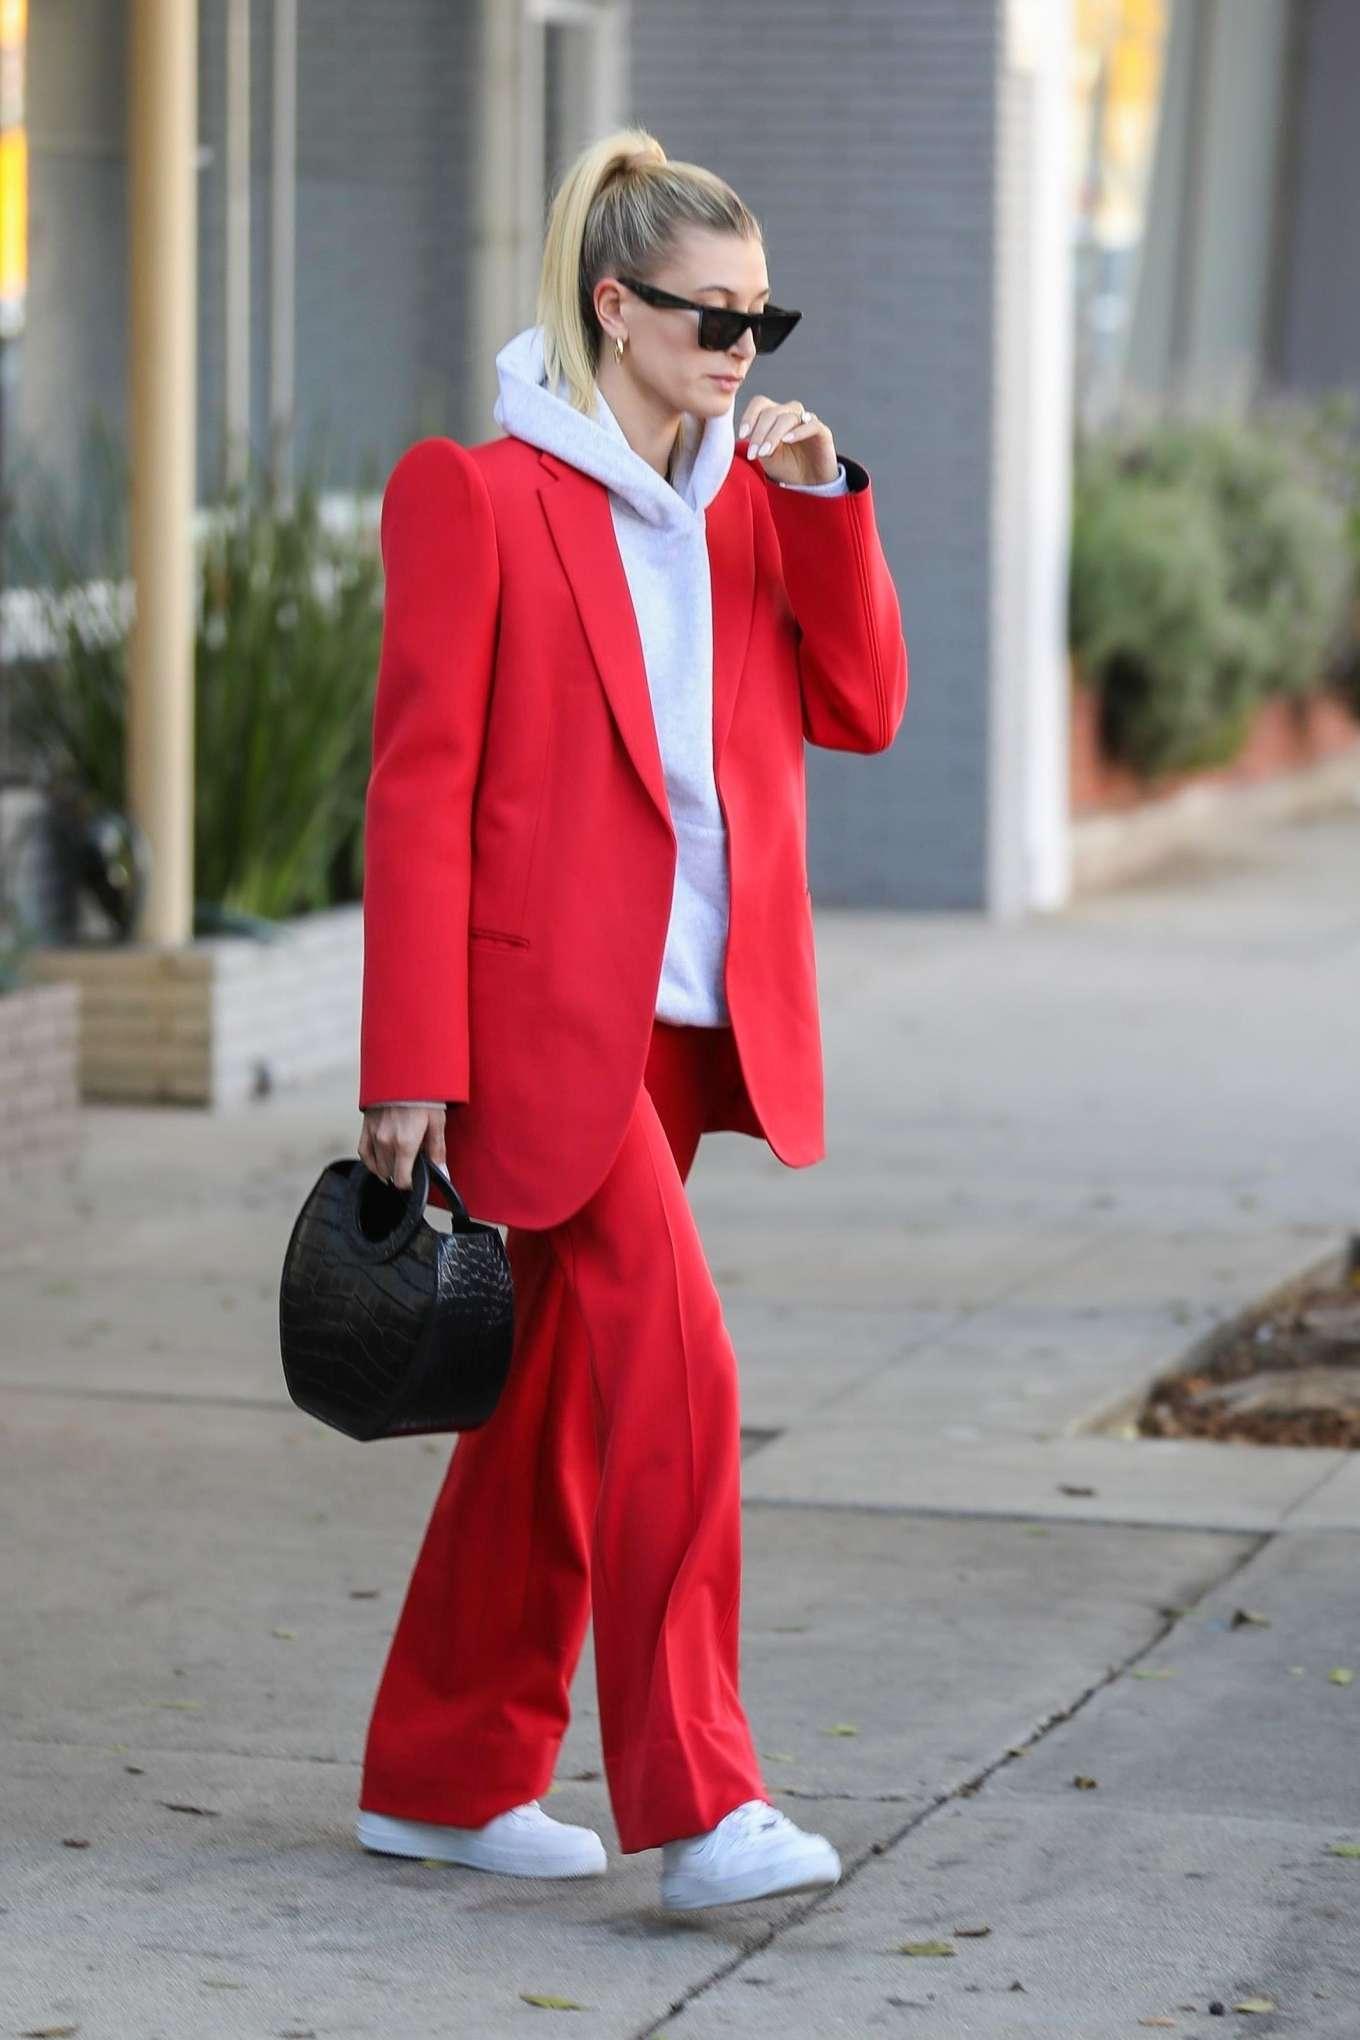 Hailey Bieber 2019 : Hailey Bieber in Red Suit – Out in Beverly Hills-08